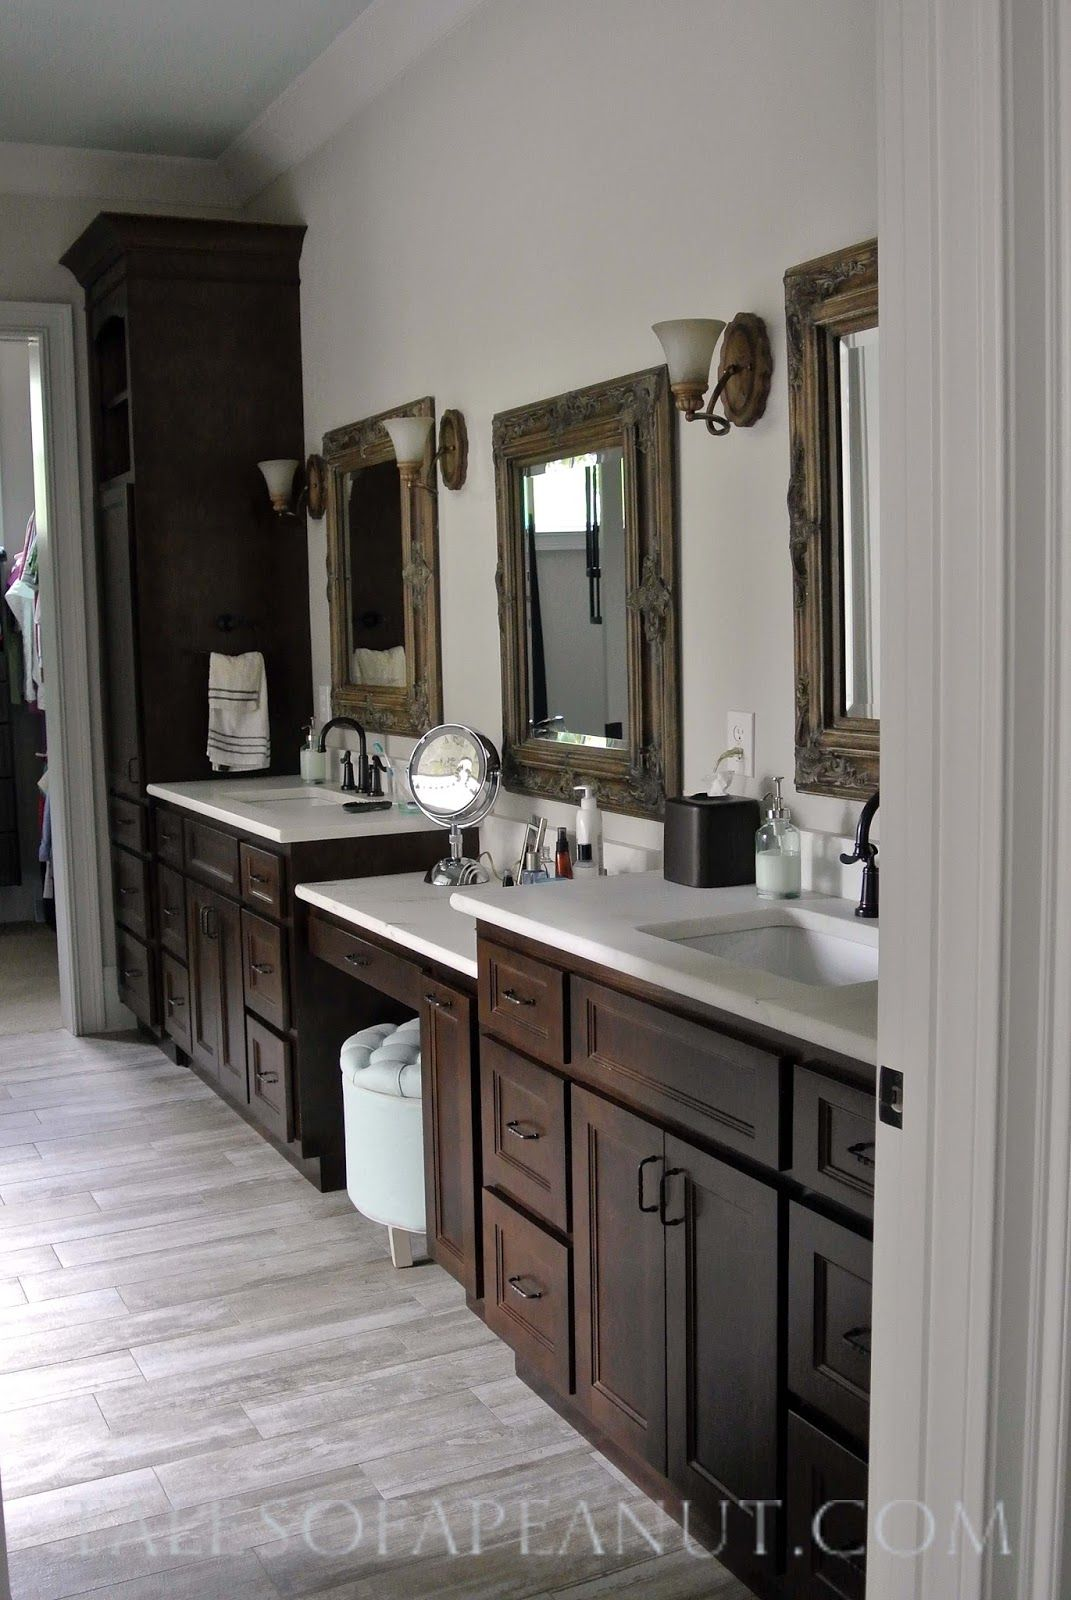 10 More Bathroom Makeovers to Check Out Master bathrooms